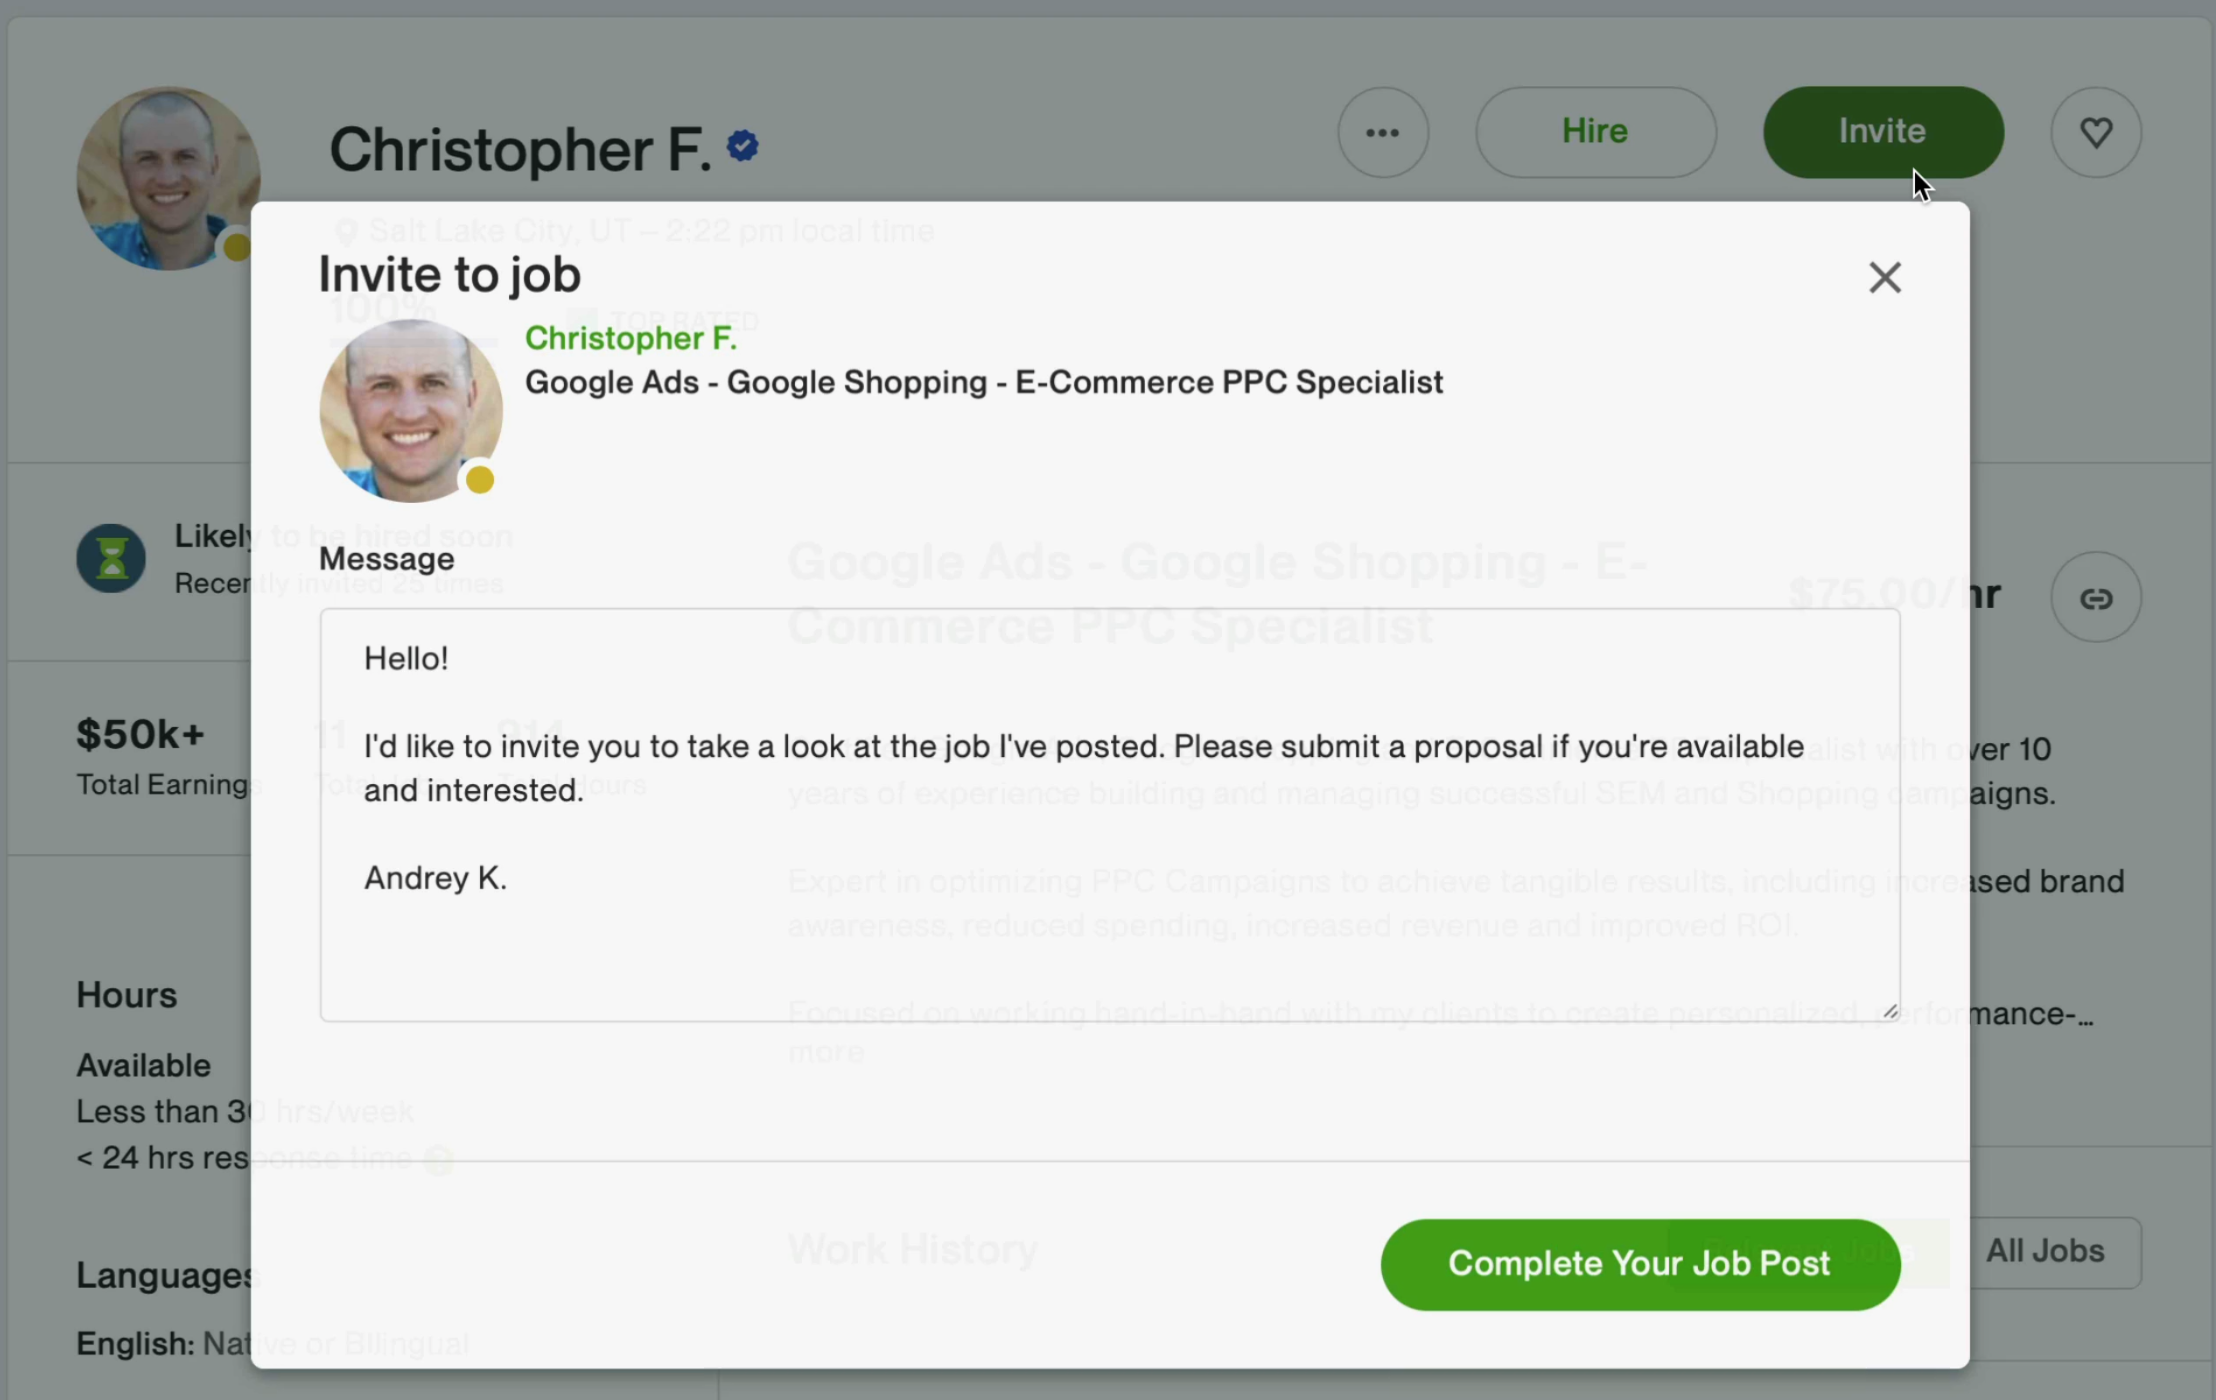 Communication and hiring process is easy on Upwork